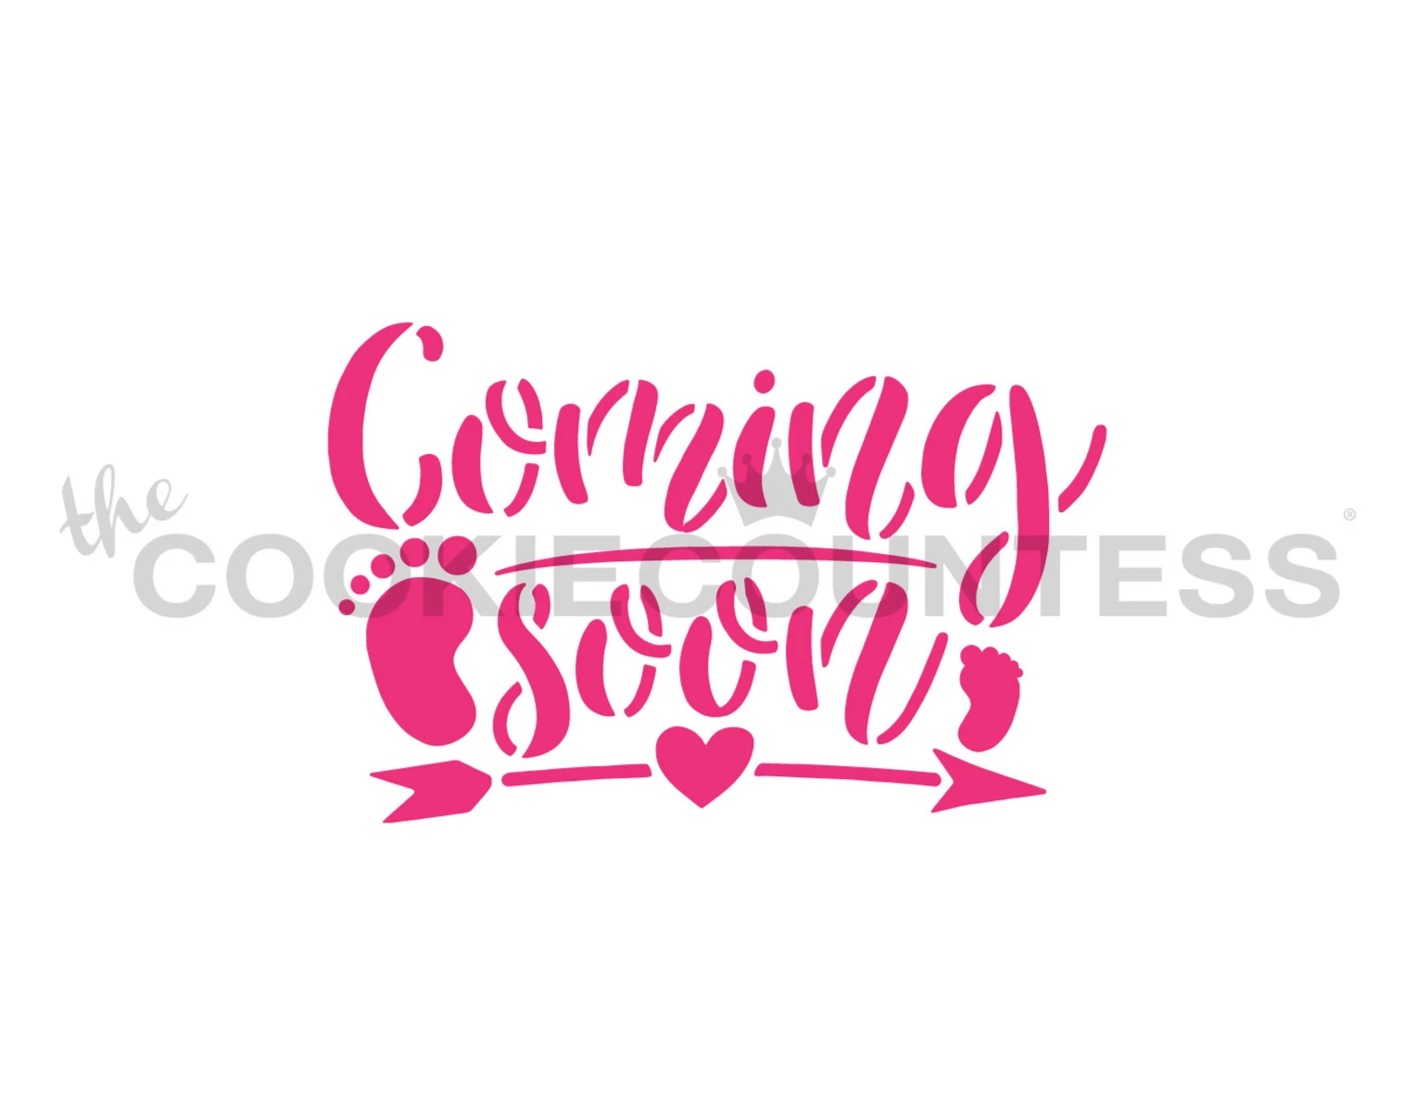 Baby Coming Soon Stencil by Cookie Countess